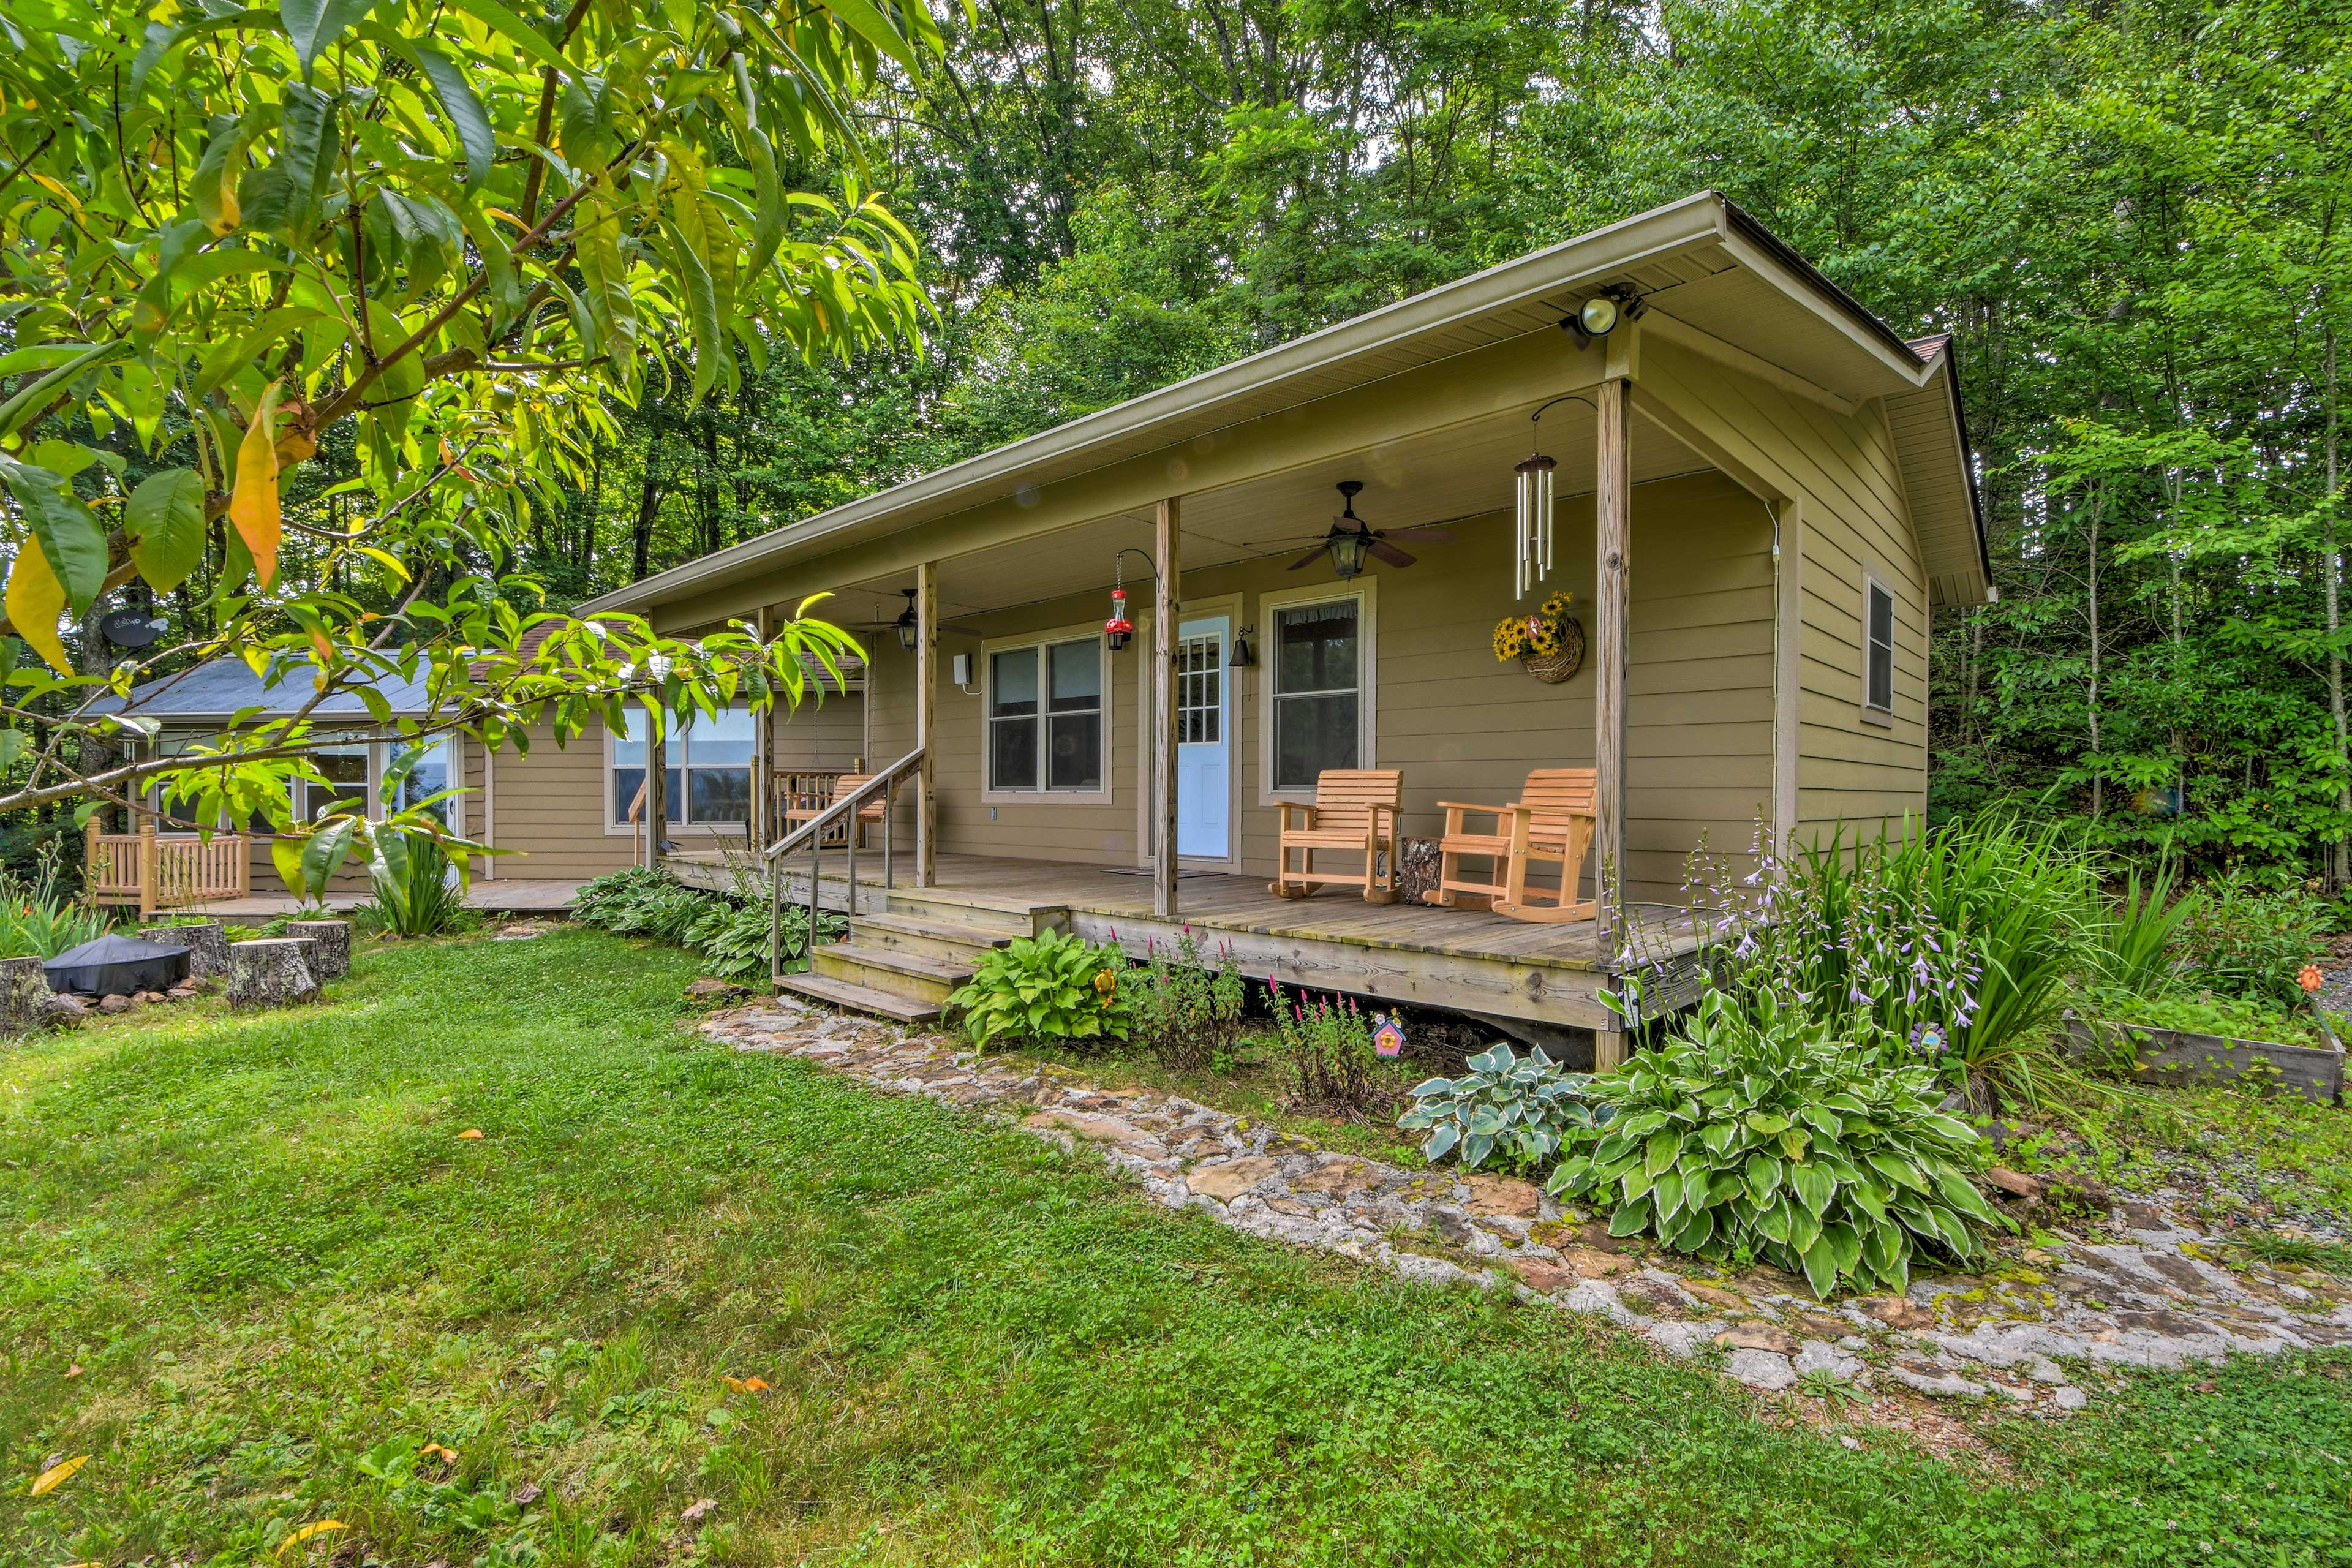 The 2-bedroom, 2-bath vacation rental sits on 6 private acres.